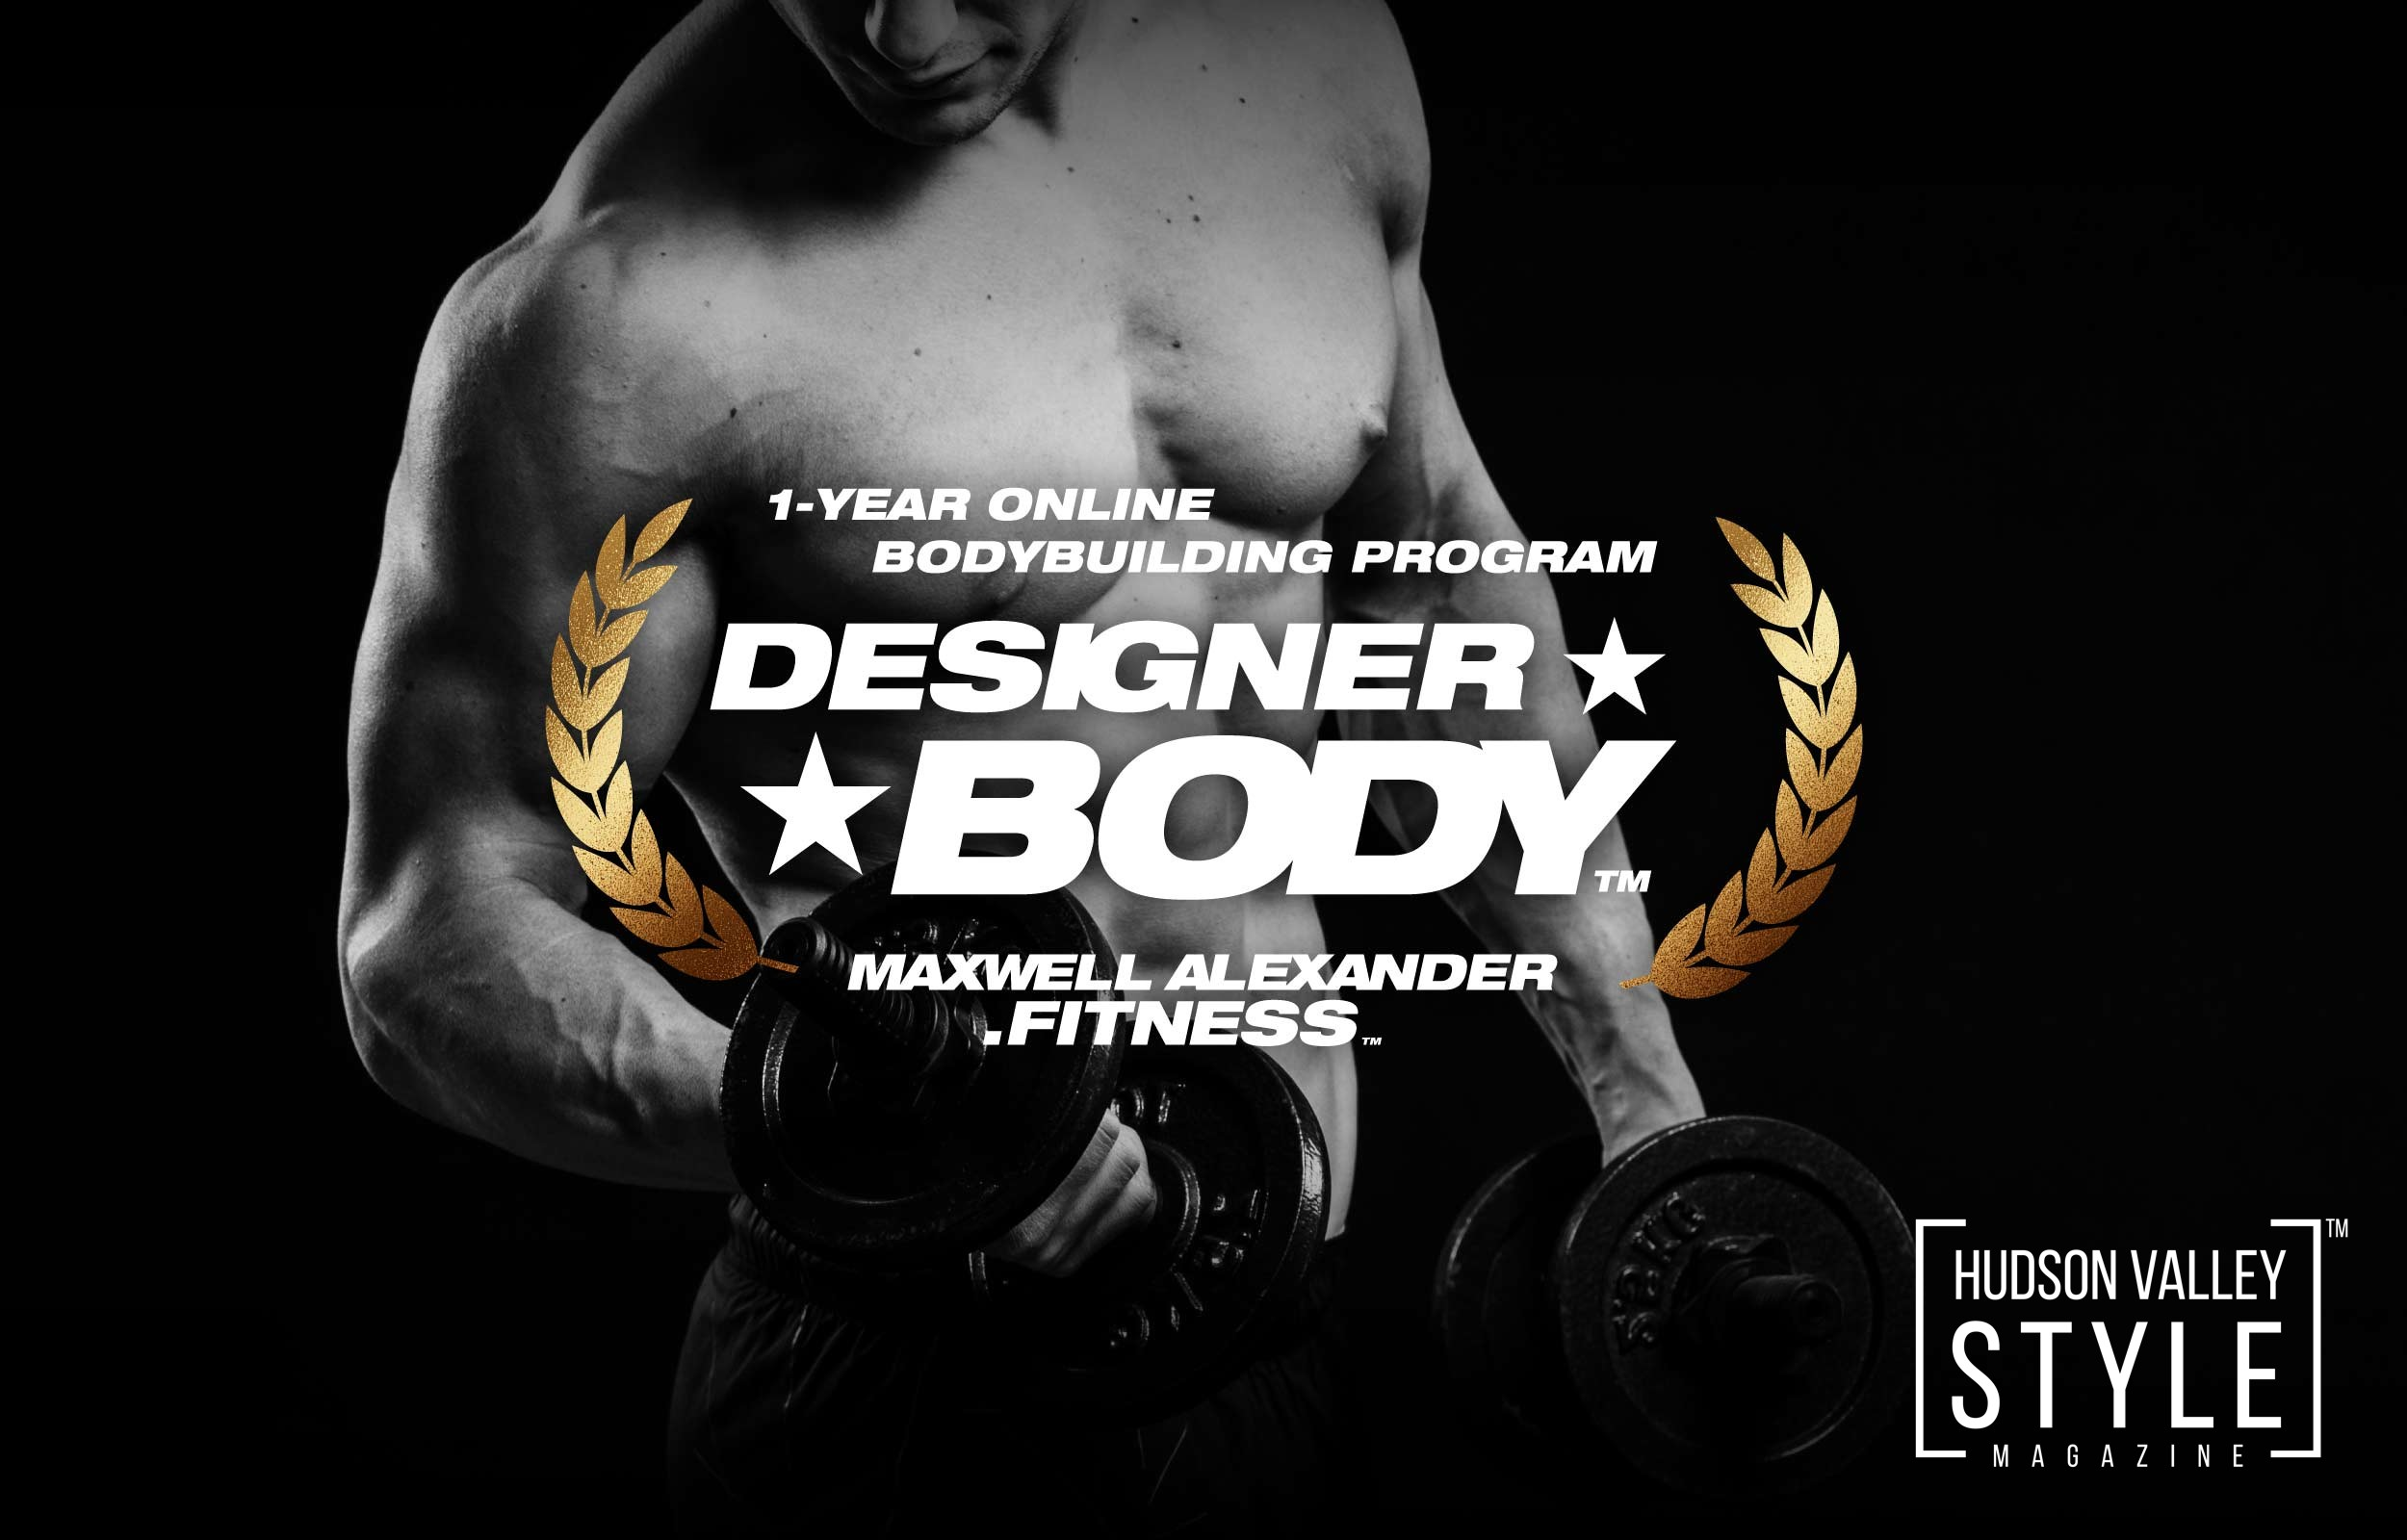 Maxwell Alexander - the best Online Fitness Trainer, Wellness, Nutrition and Bodybuilding Coach